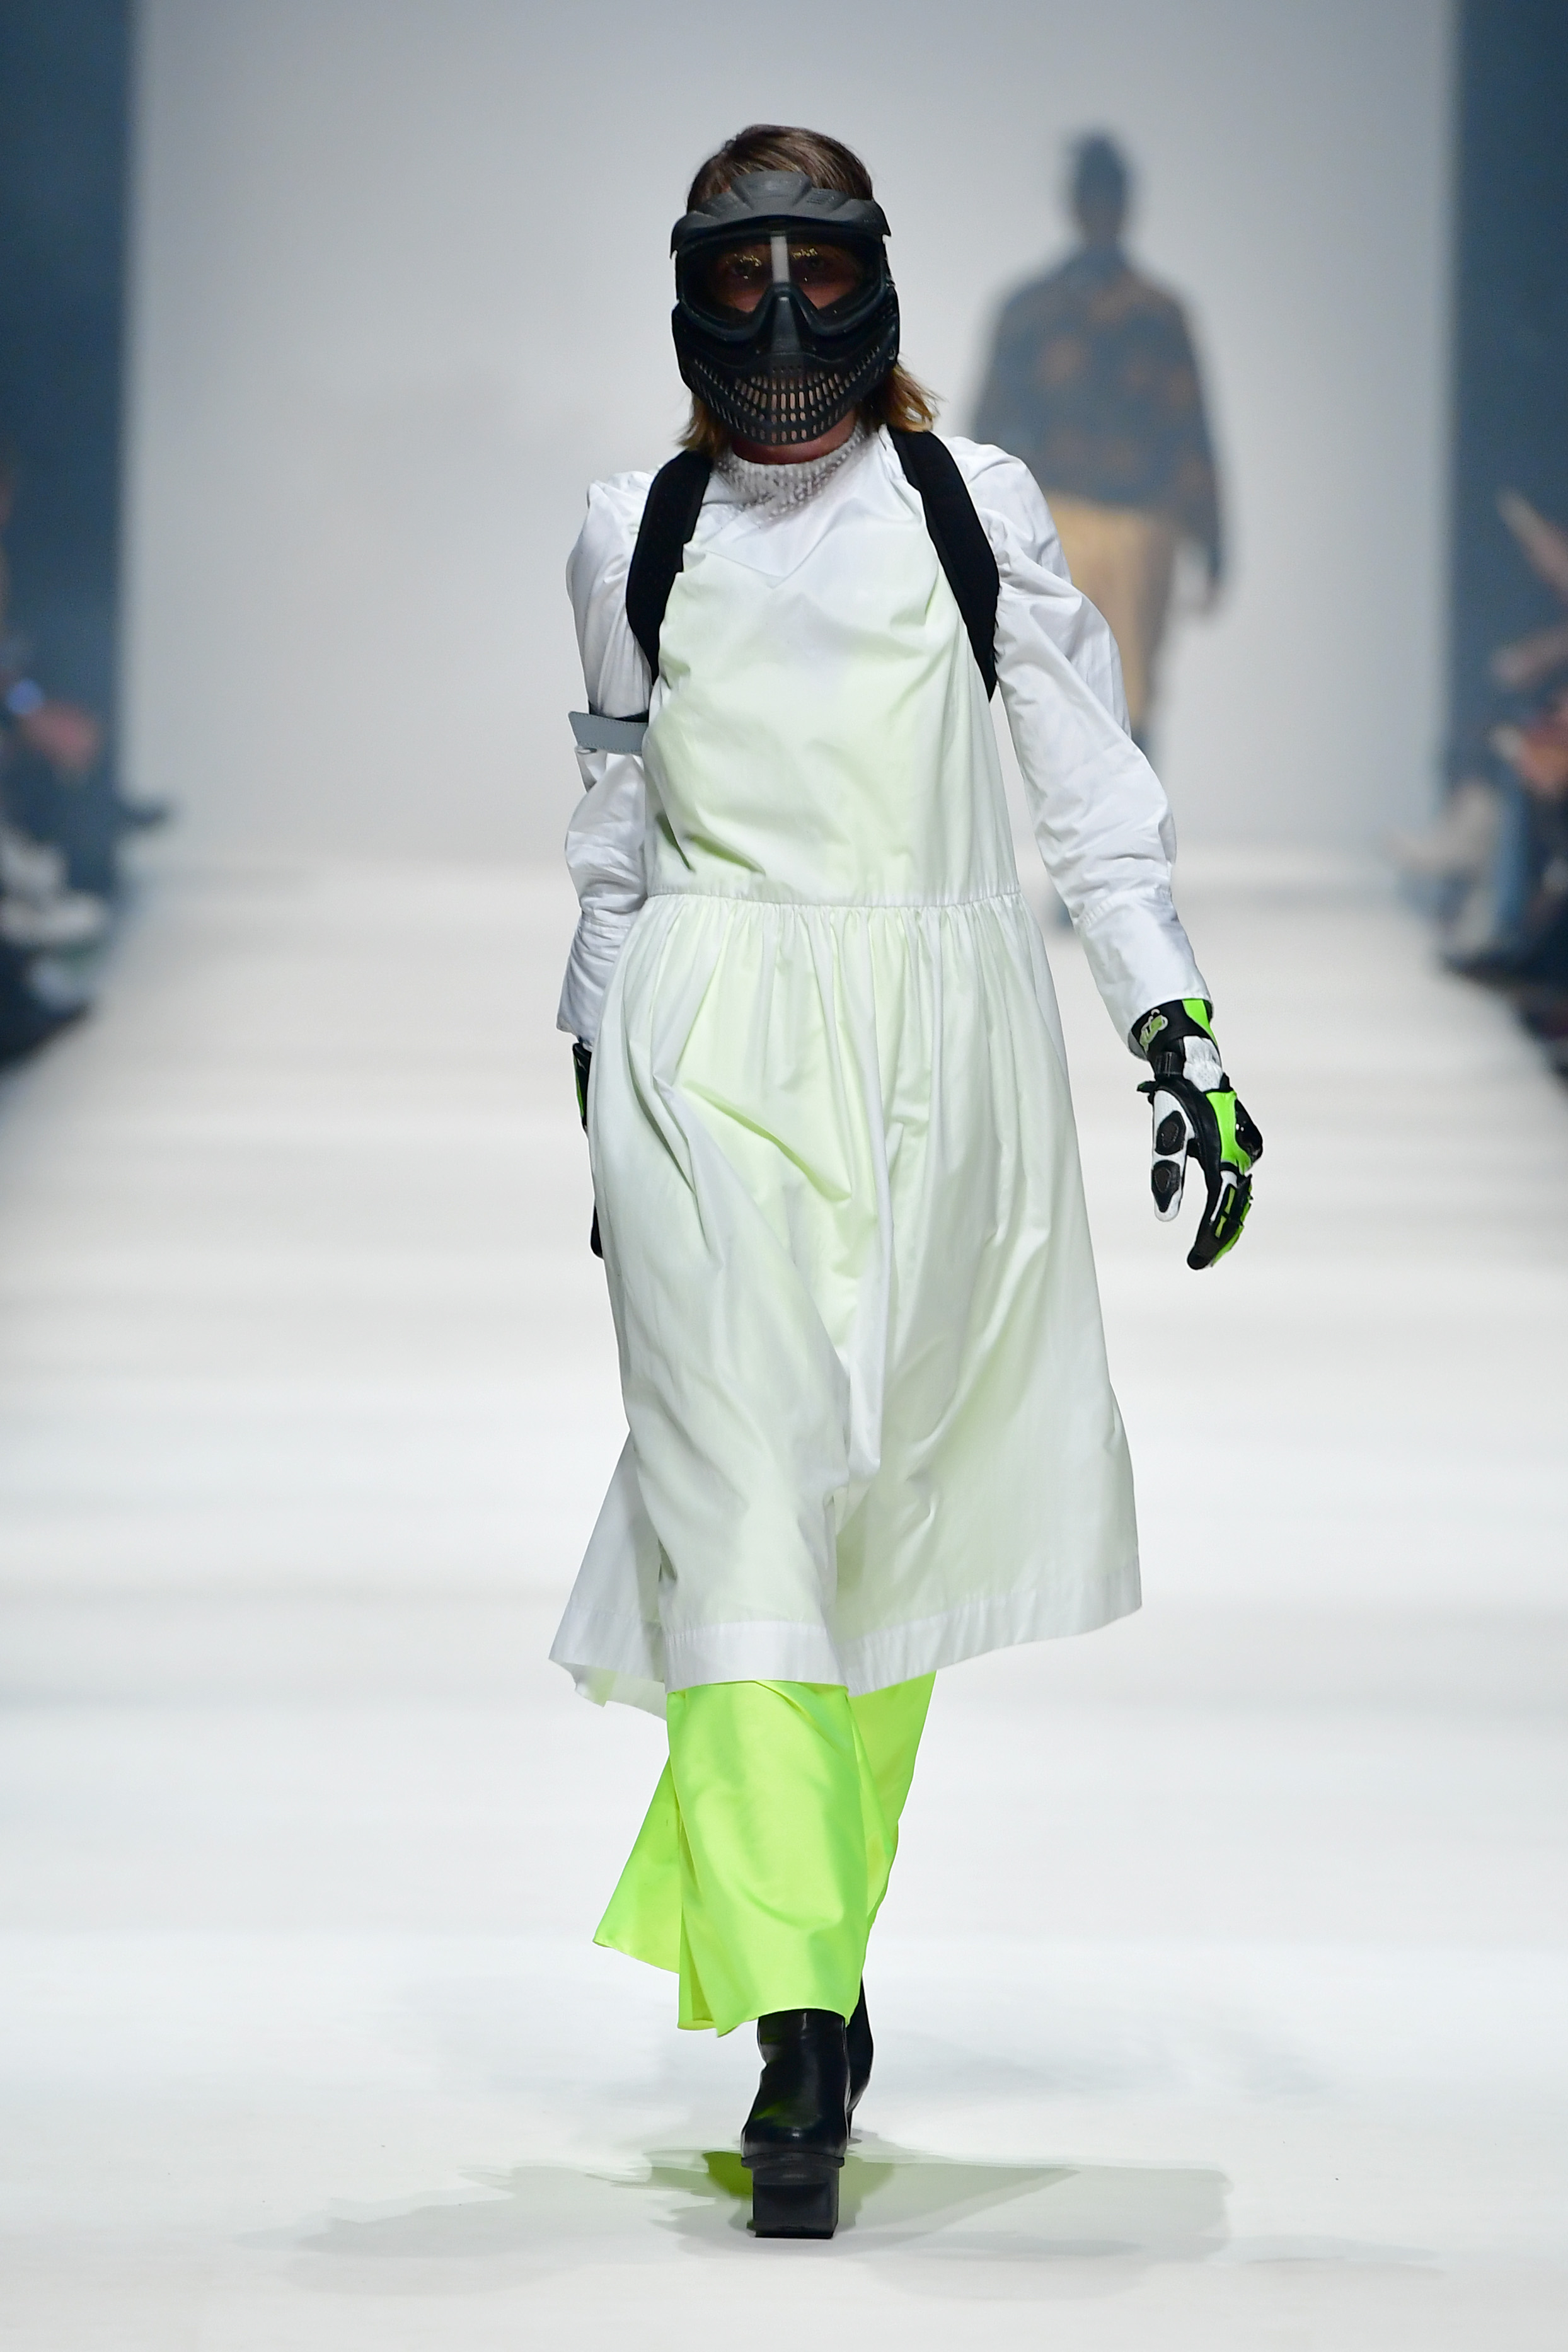 BERLIN, GERMANY - JANUARY 14: A model wearing a white dress by Lara Krude, Neon dress by Maria Roslova, bag by Mimycri, gloves by Biker-Zone and shoes by Trippen walks the runway at the Neonyt show during Berlin Fashion Week Autumn/Winter 2020 at Kraftwerk Mitte on January 14, 2020 in Berlin, Germany. (Photo by Alexander Koerner/Getty Images for MBFW)